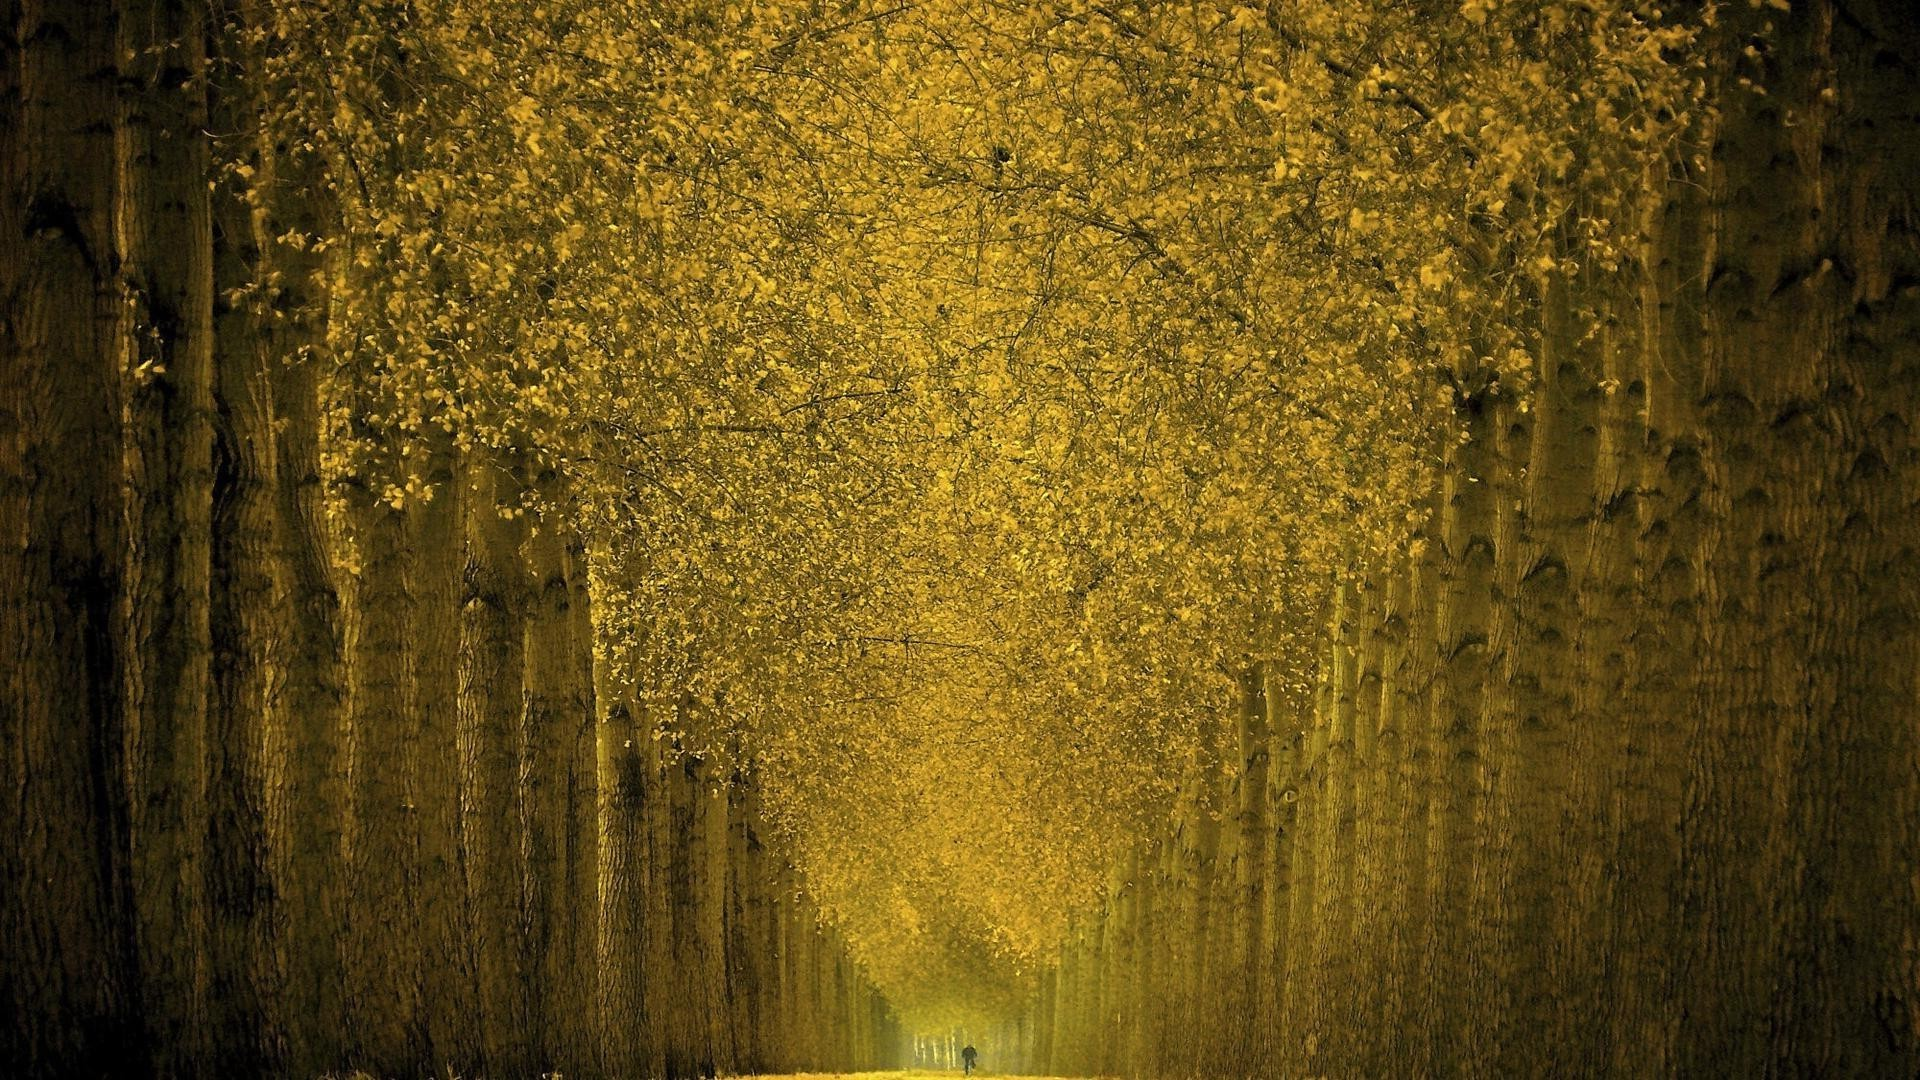 The Golden alley